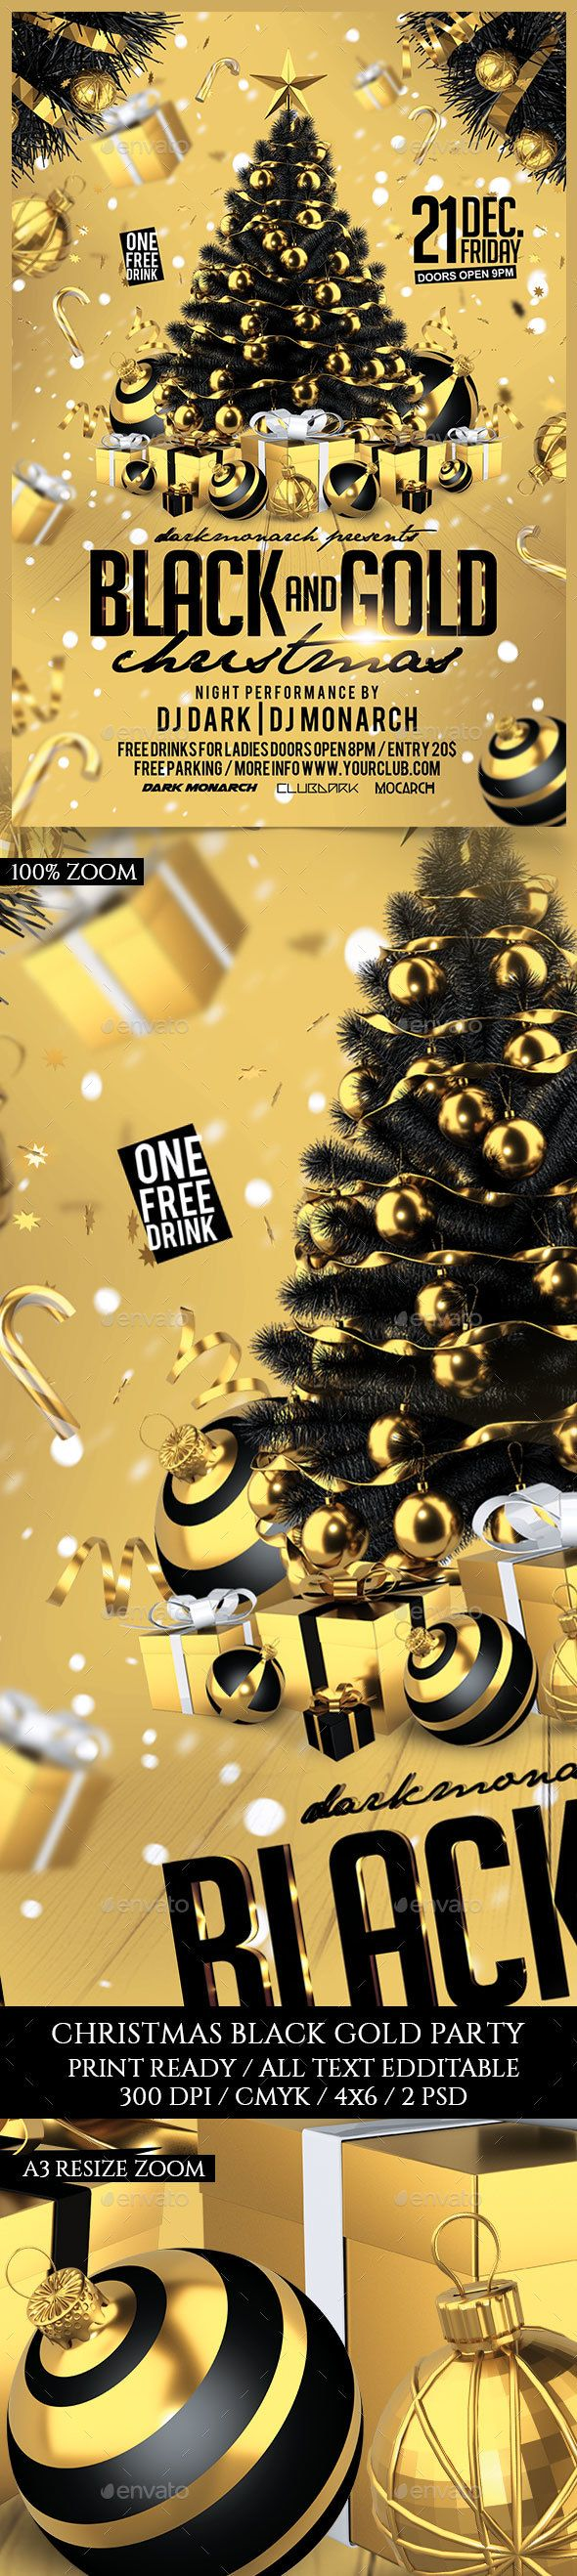 Free christmas poster design templates - Black And Gold Christmas Party